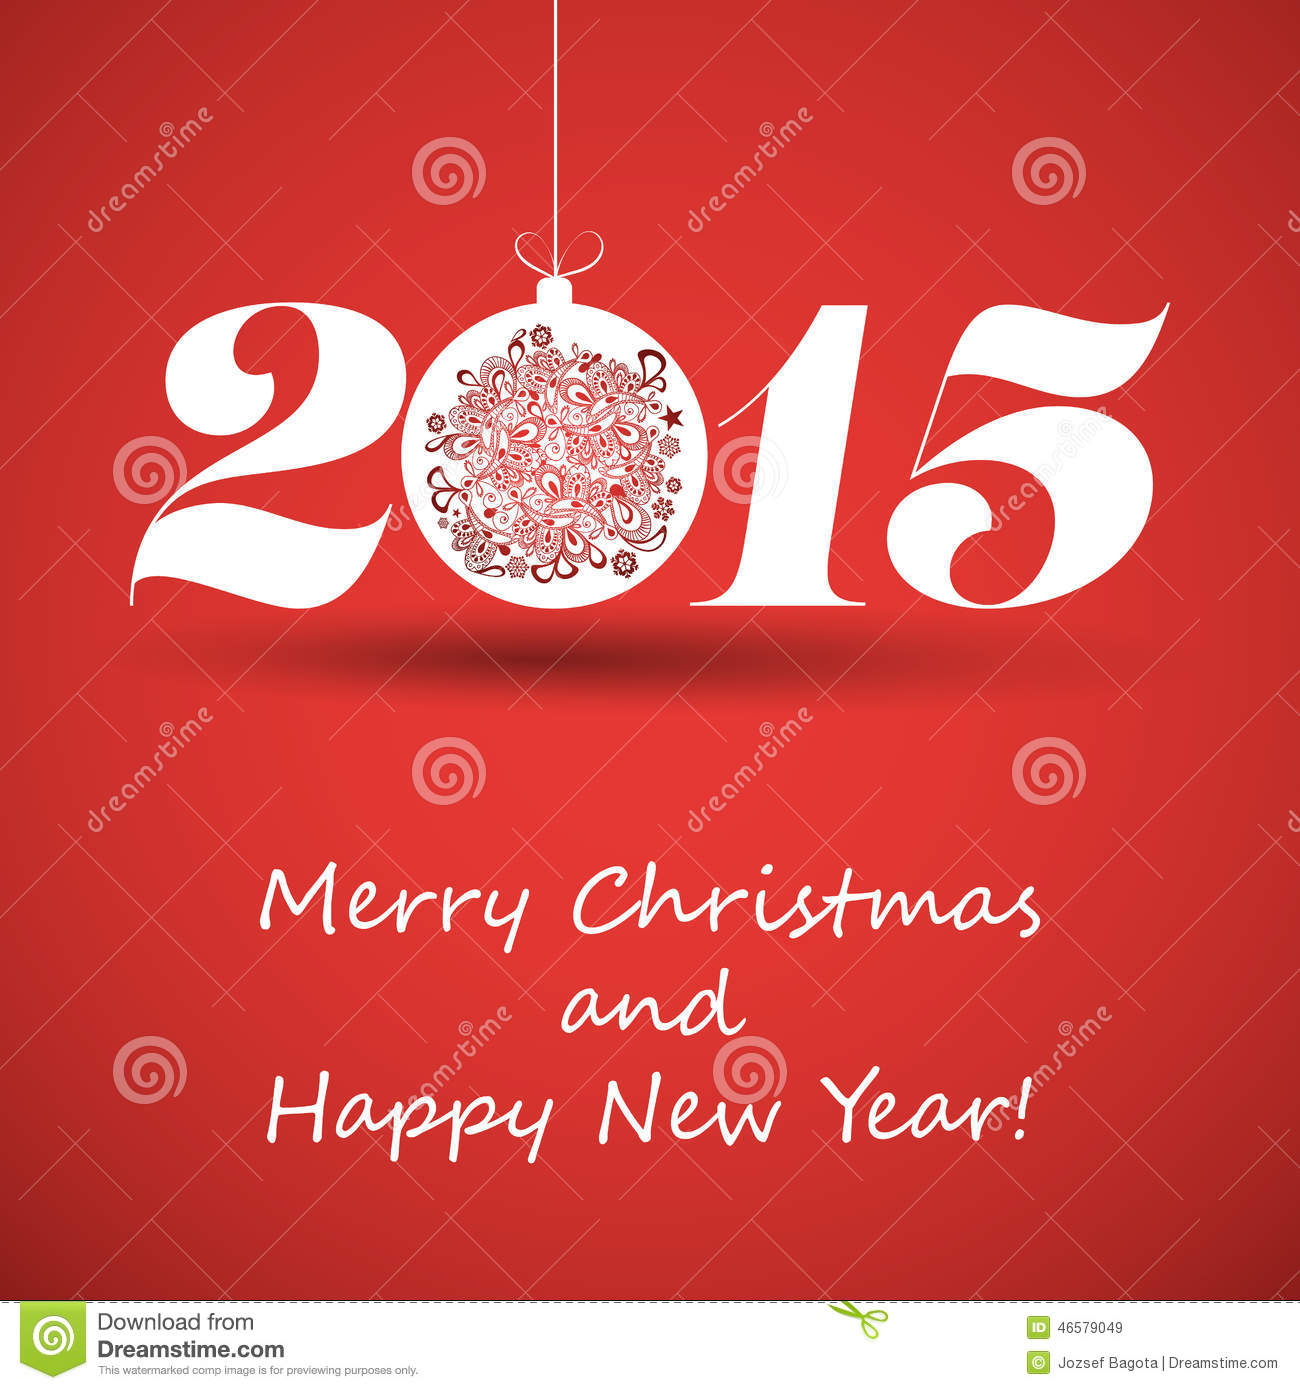 Merry christmas and happy new year greeting card 2015 stock vector merry christmas and happy new year greeting card 2015 kristyandbryce Images